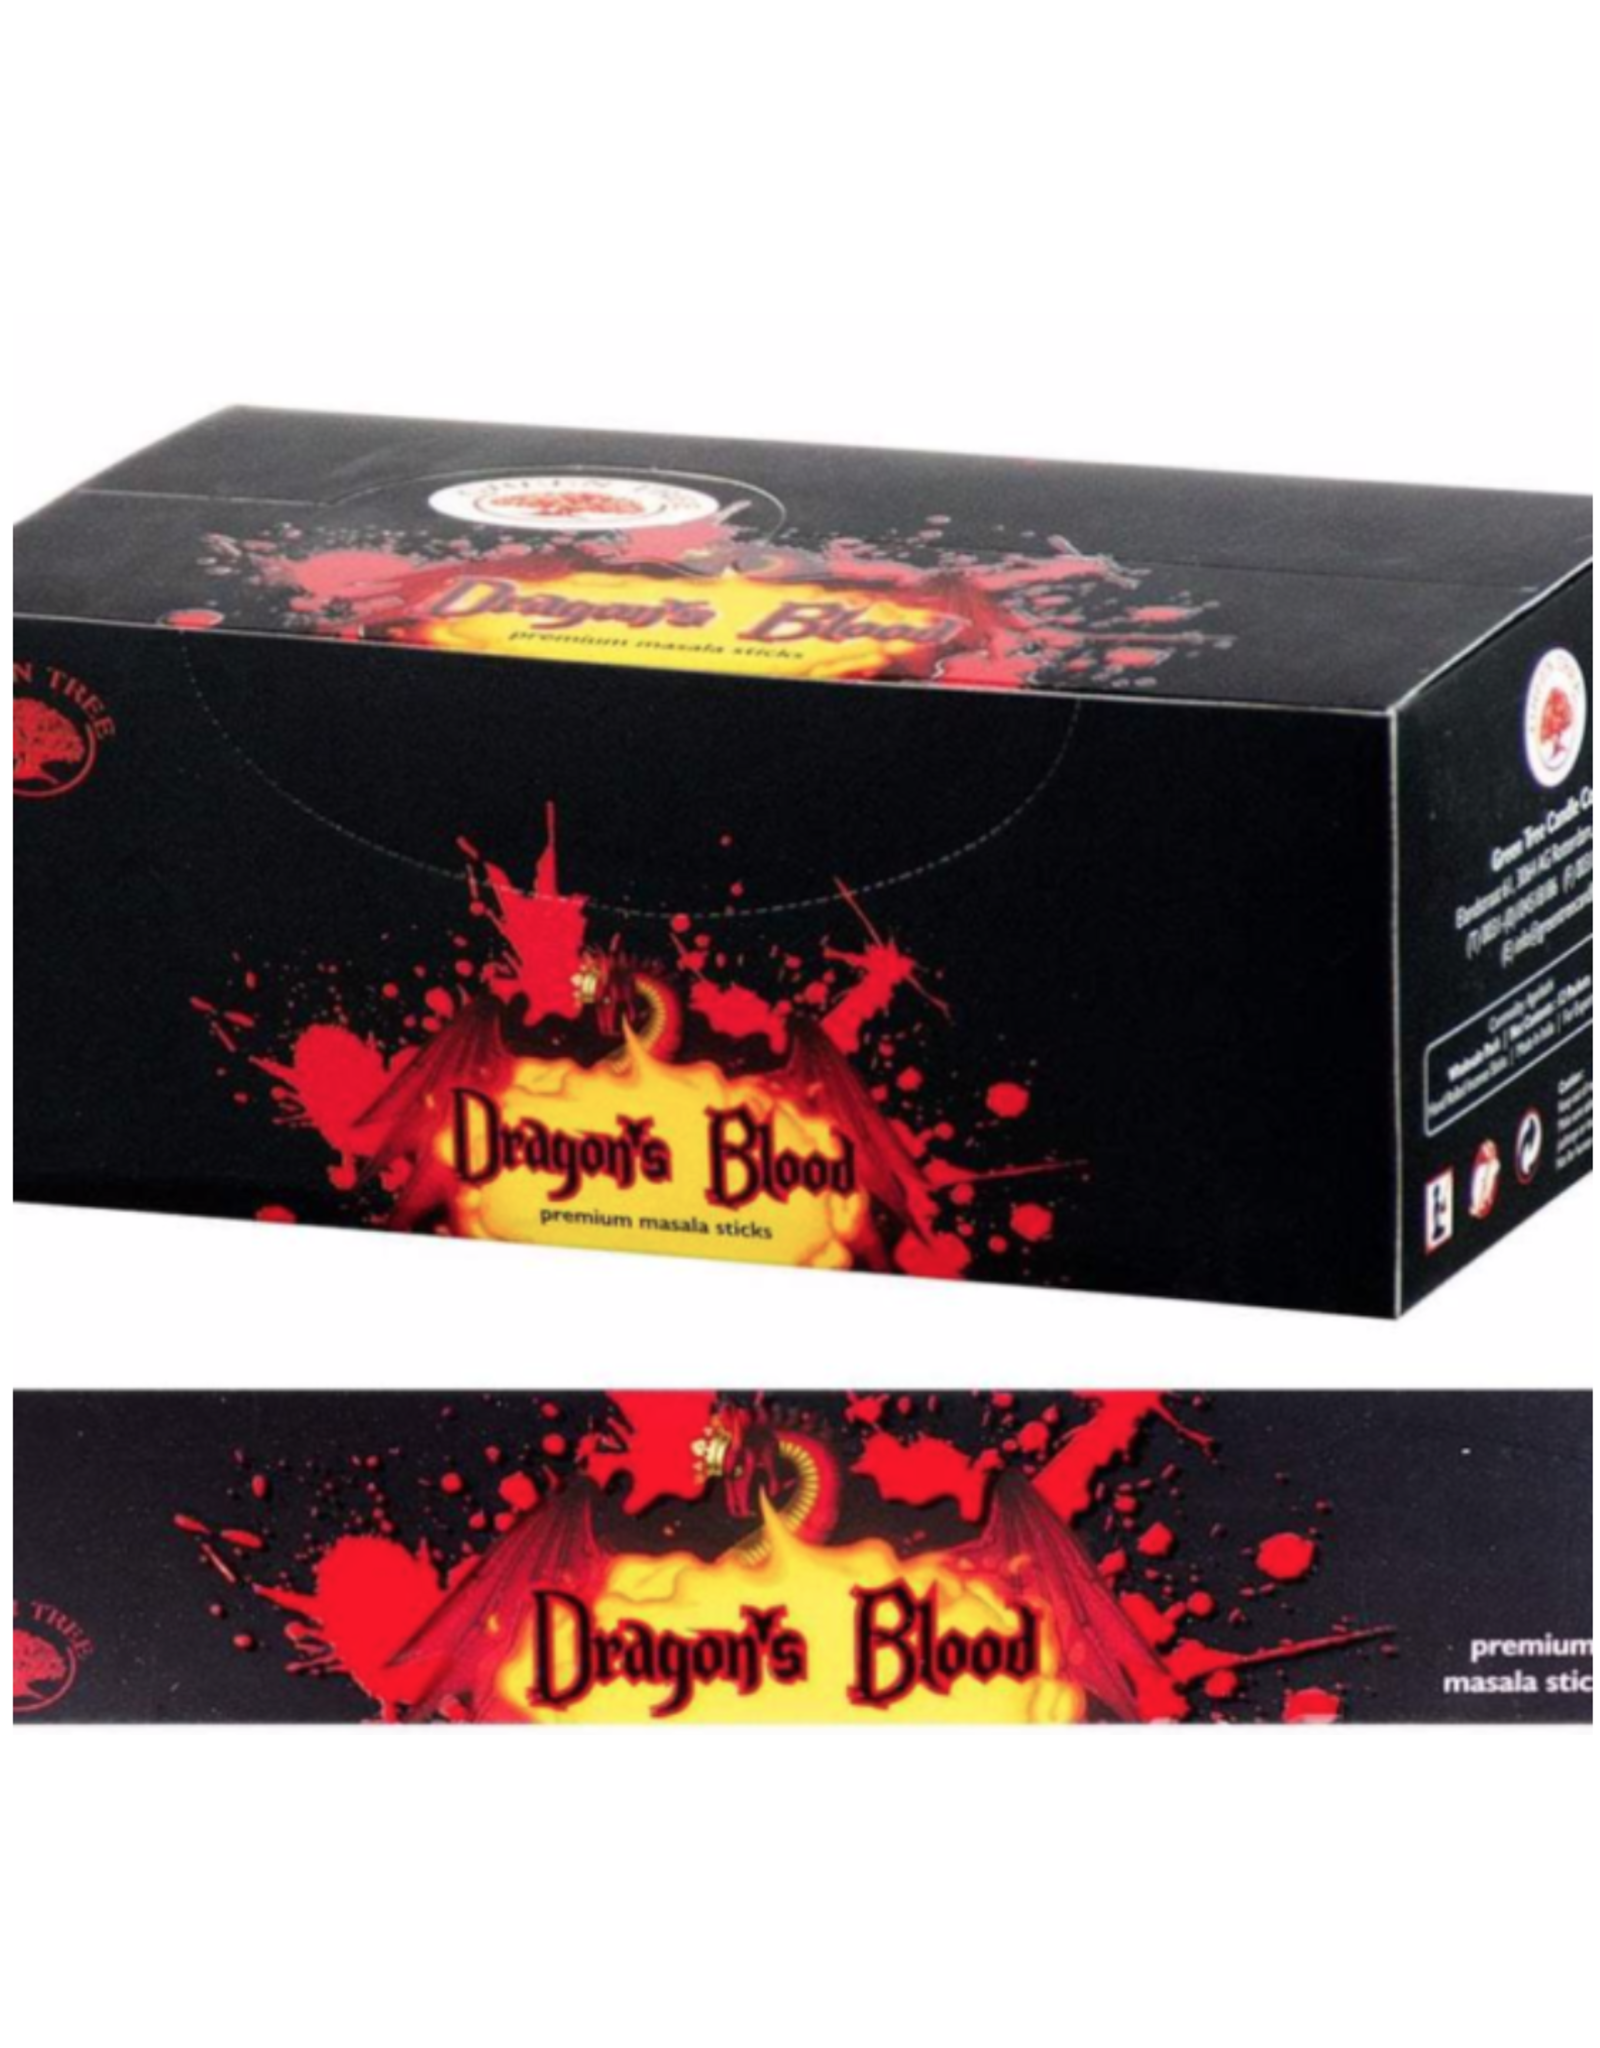 Dragon's Blood Sticks